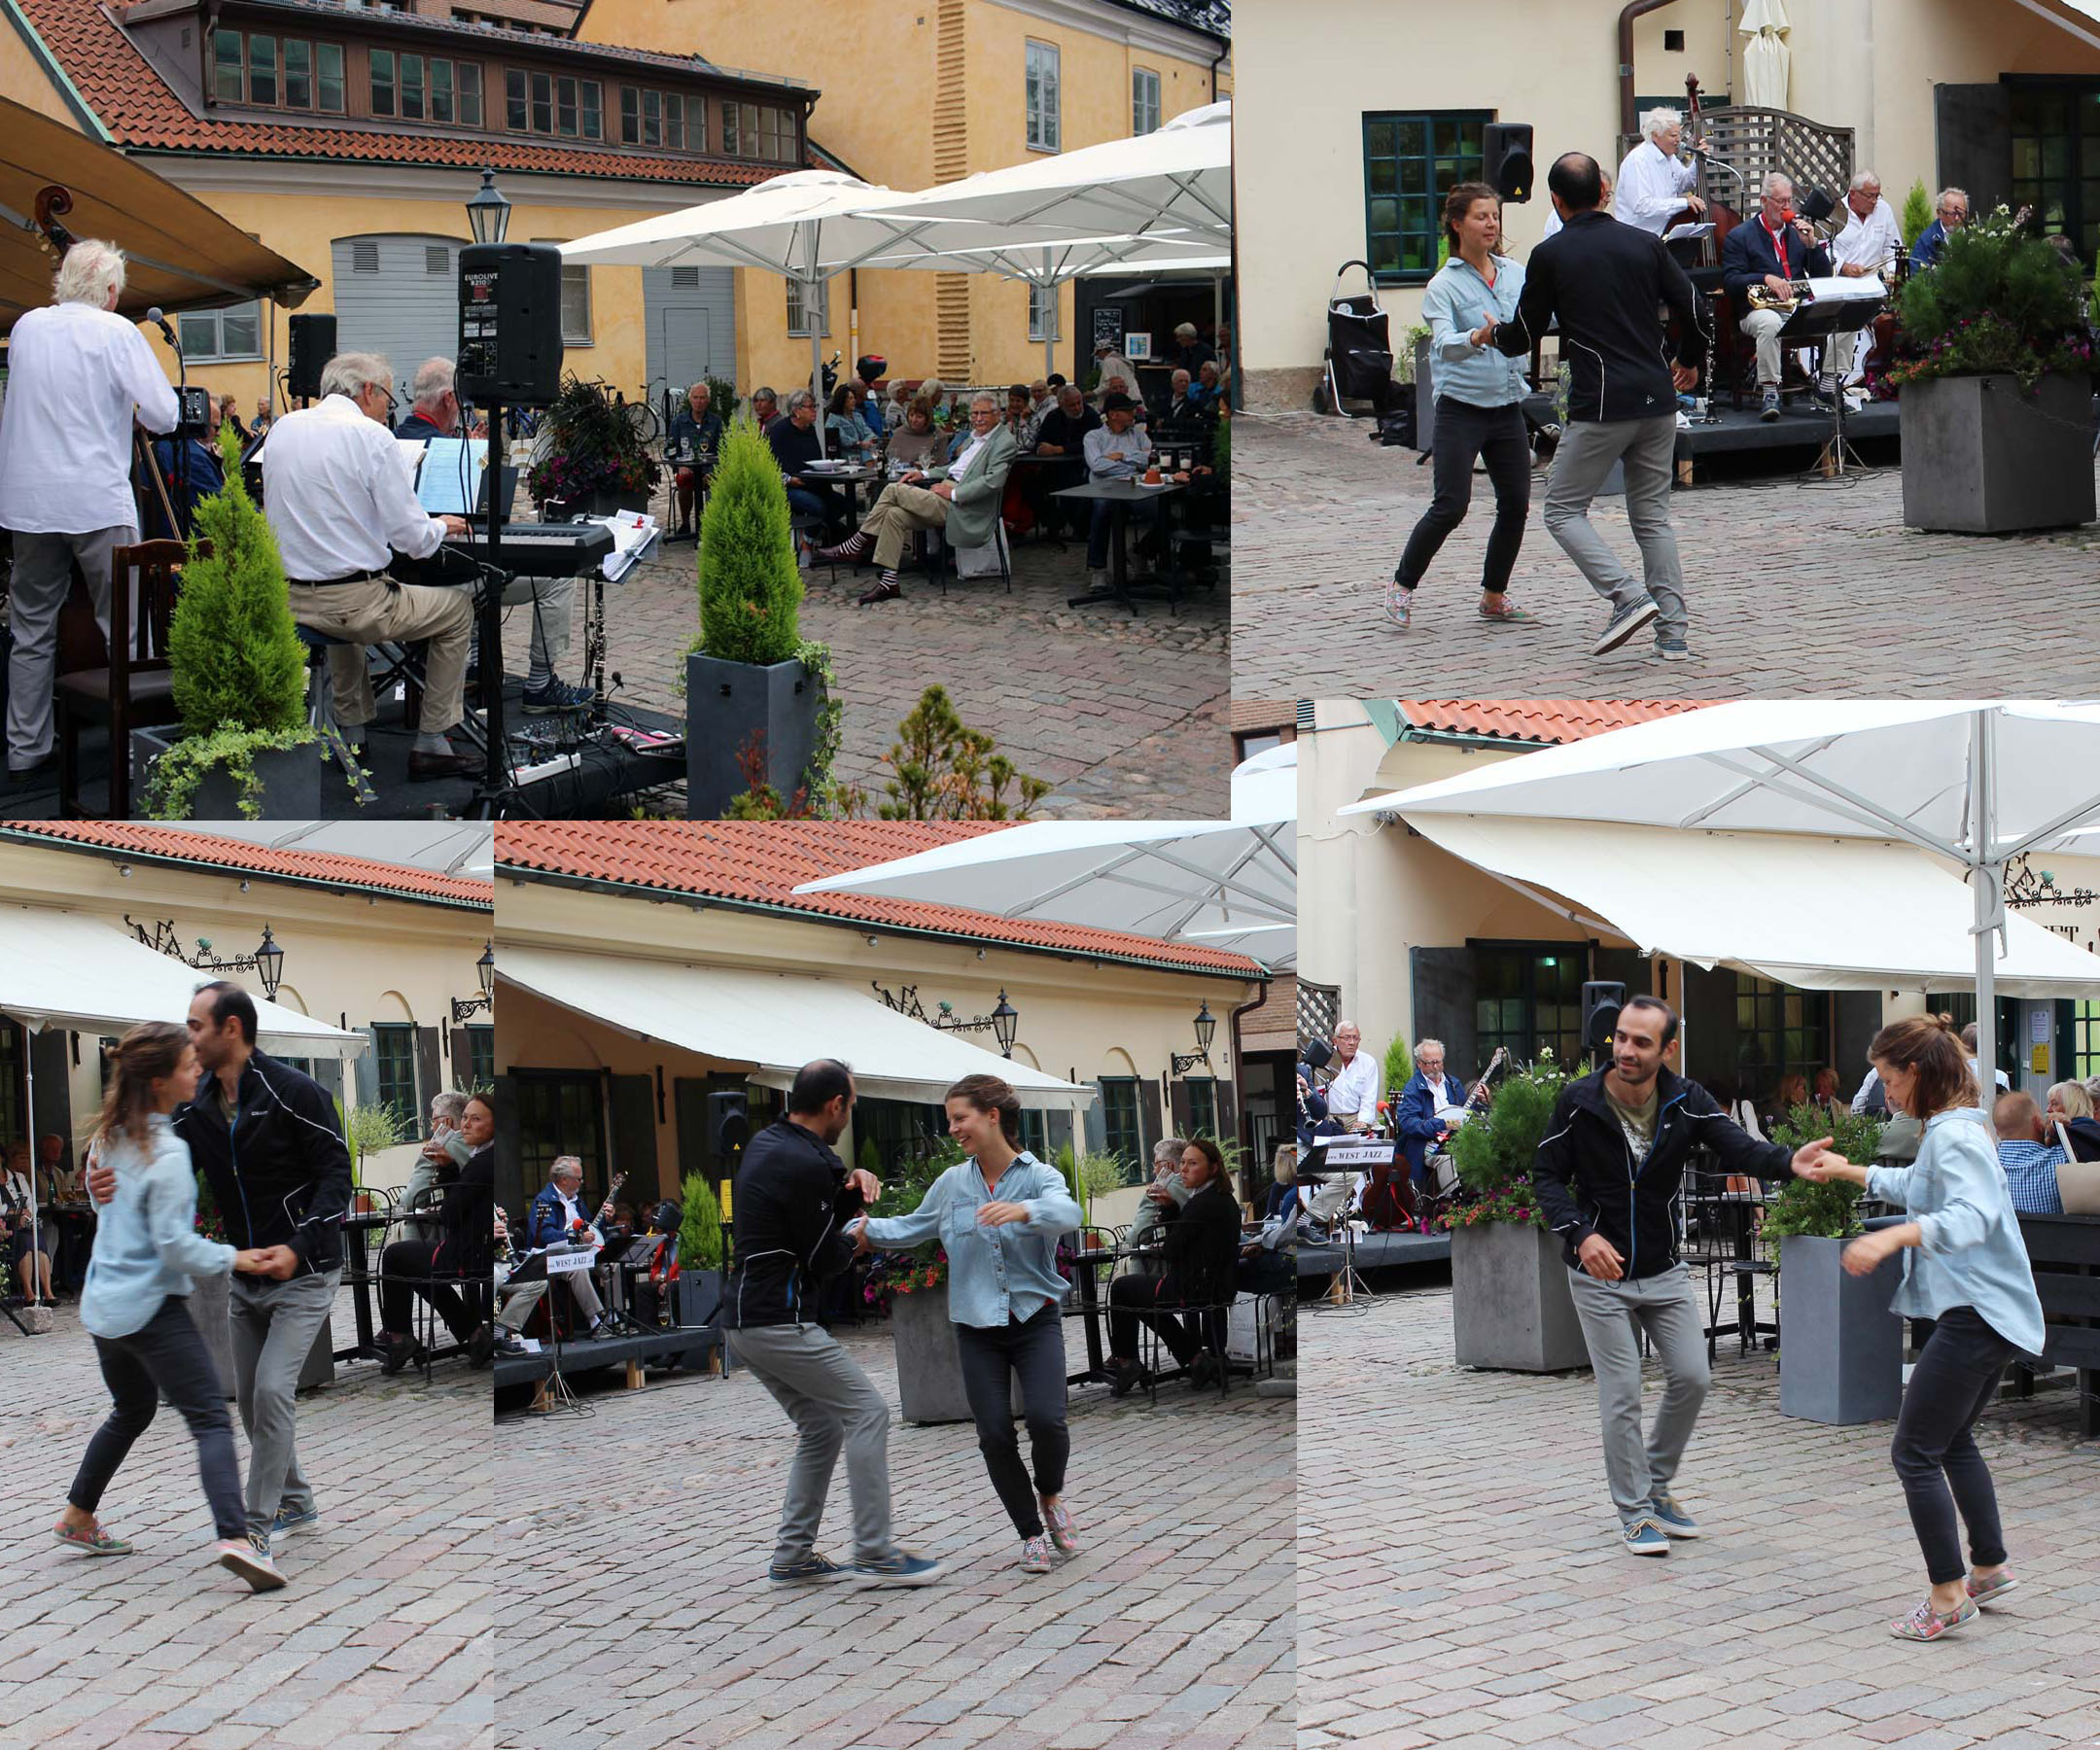 Culture Festival: Jazz and dancing in Kronhustorget